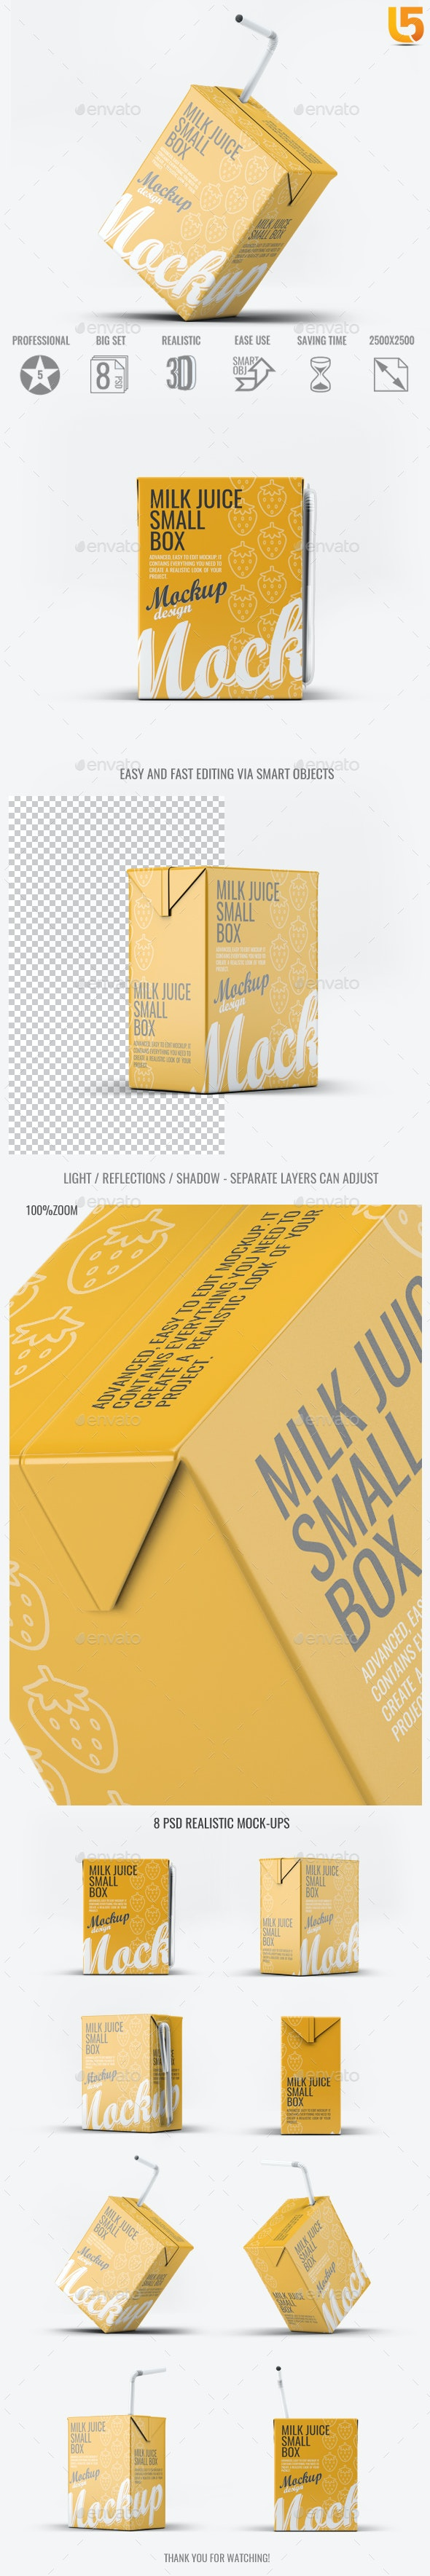 Milk or Juice Small Box Mock-Up - Food and Drink Packaging